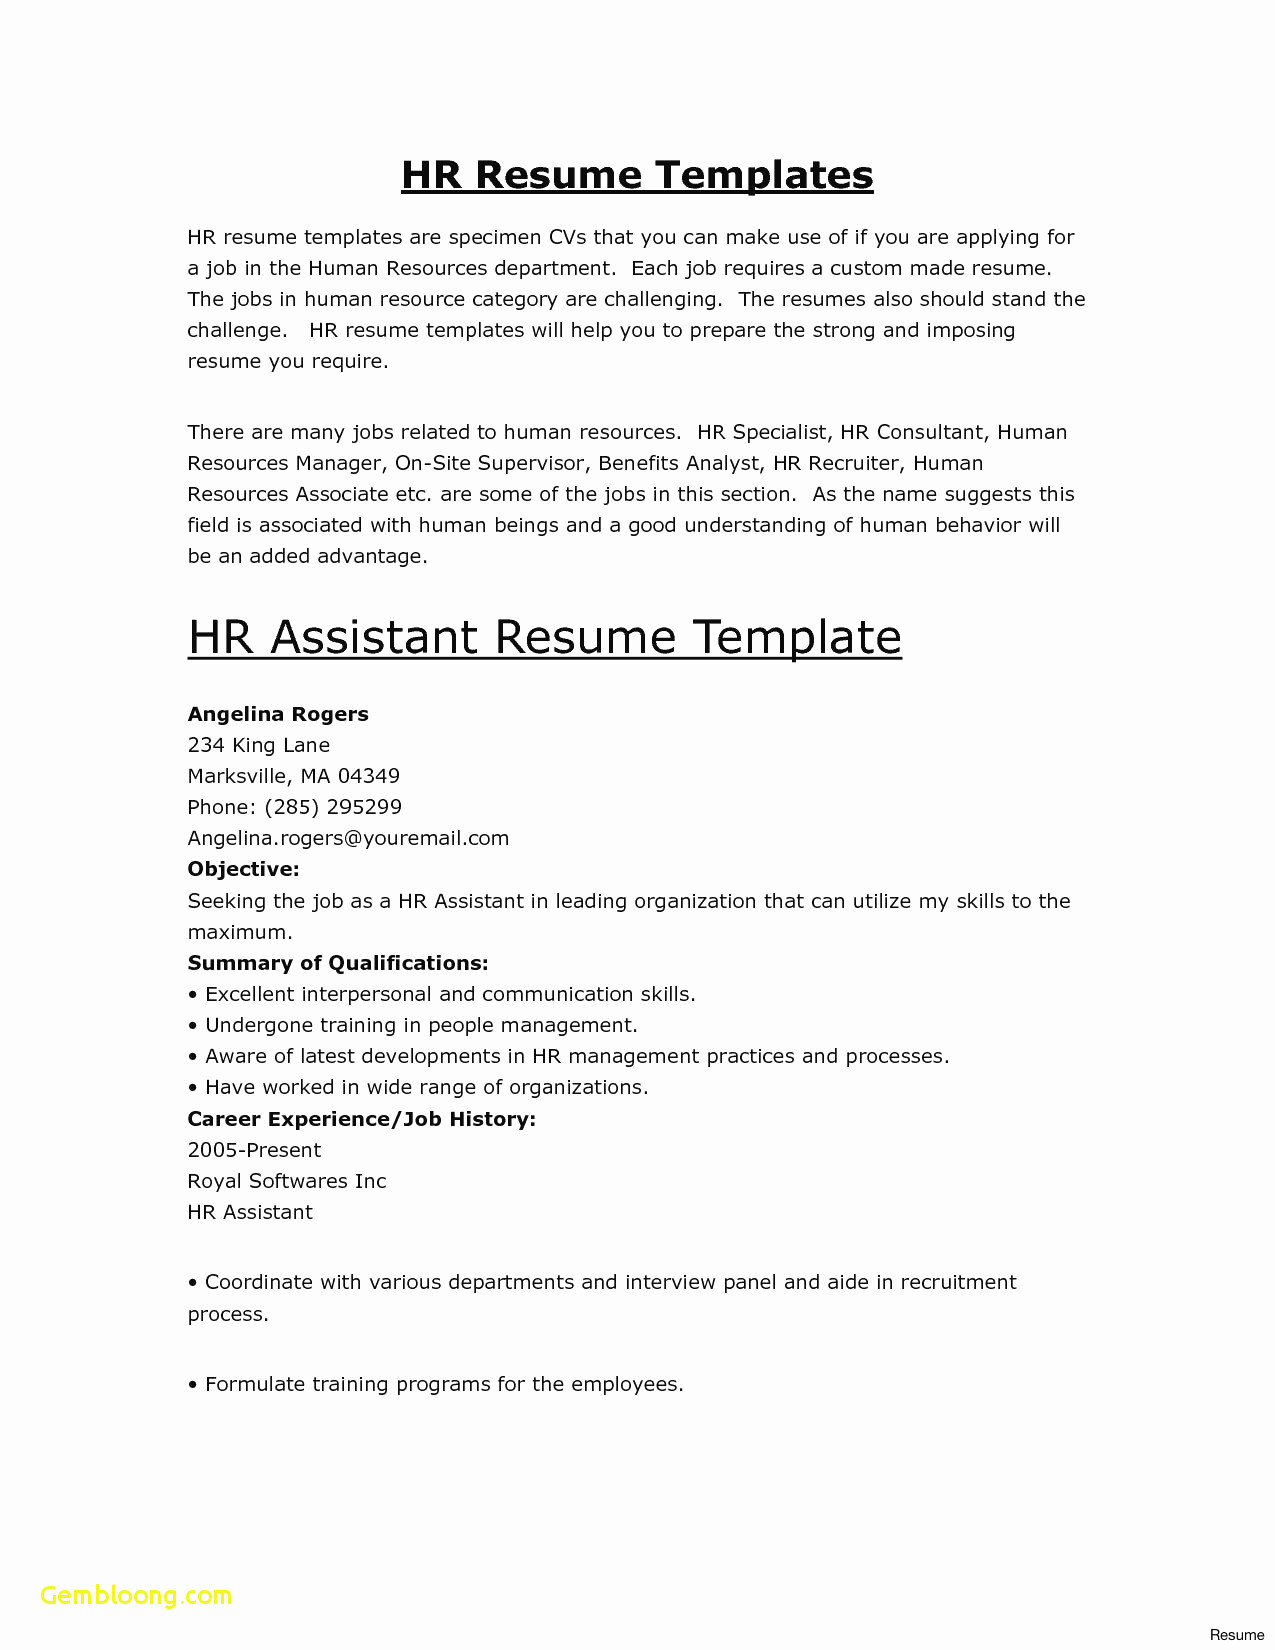 Salesperson Resume Template - Resume for Sales Representative Jobs Inspirational 20 Resume for